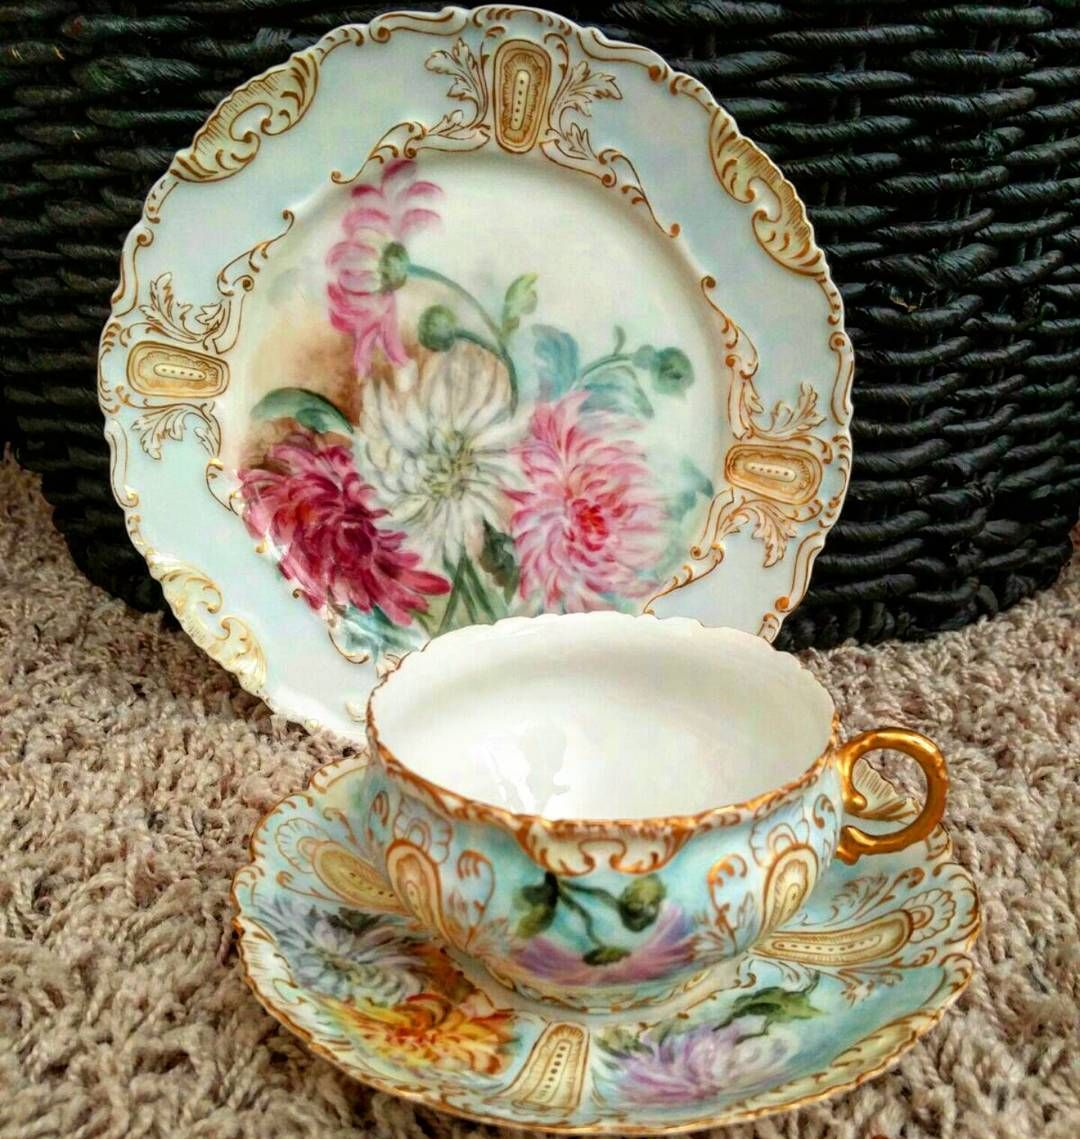 Beautiful vintage teacup by Limoges in excellent condition